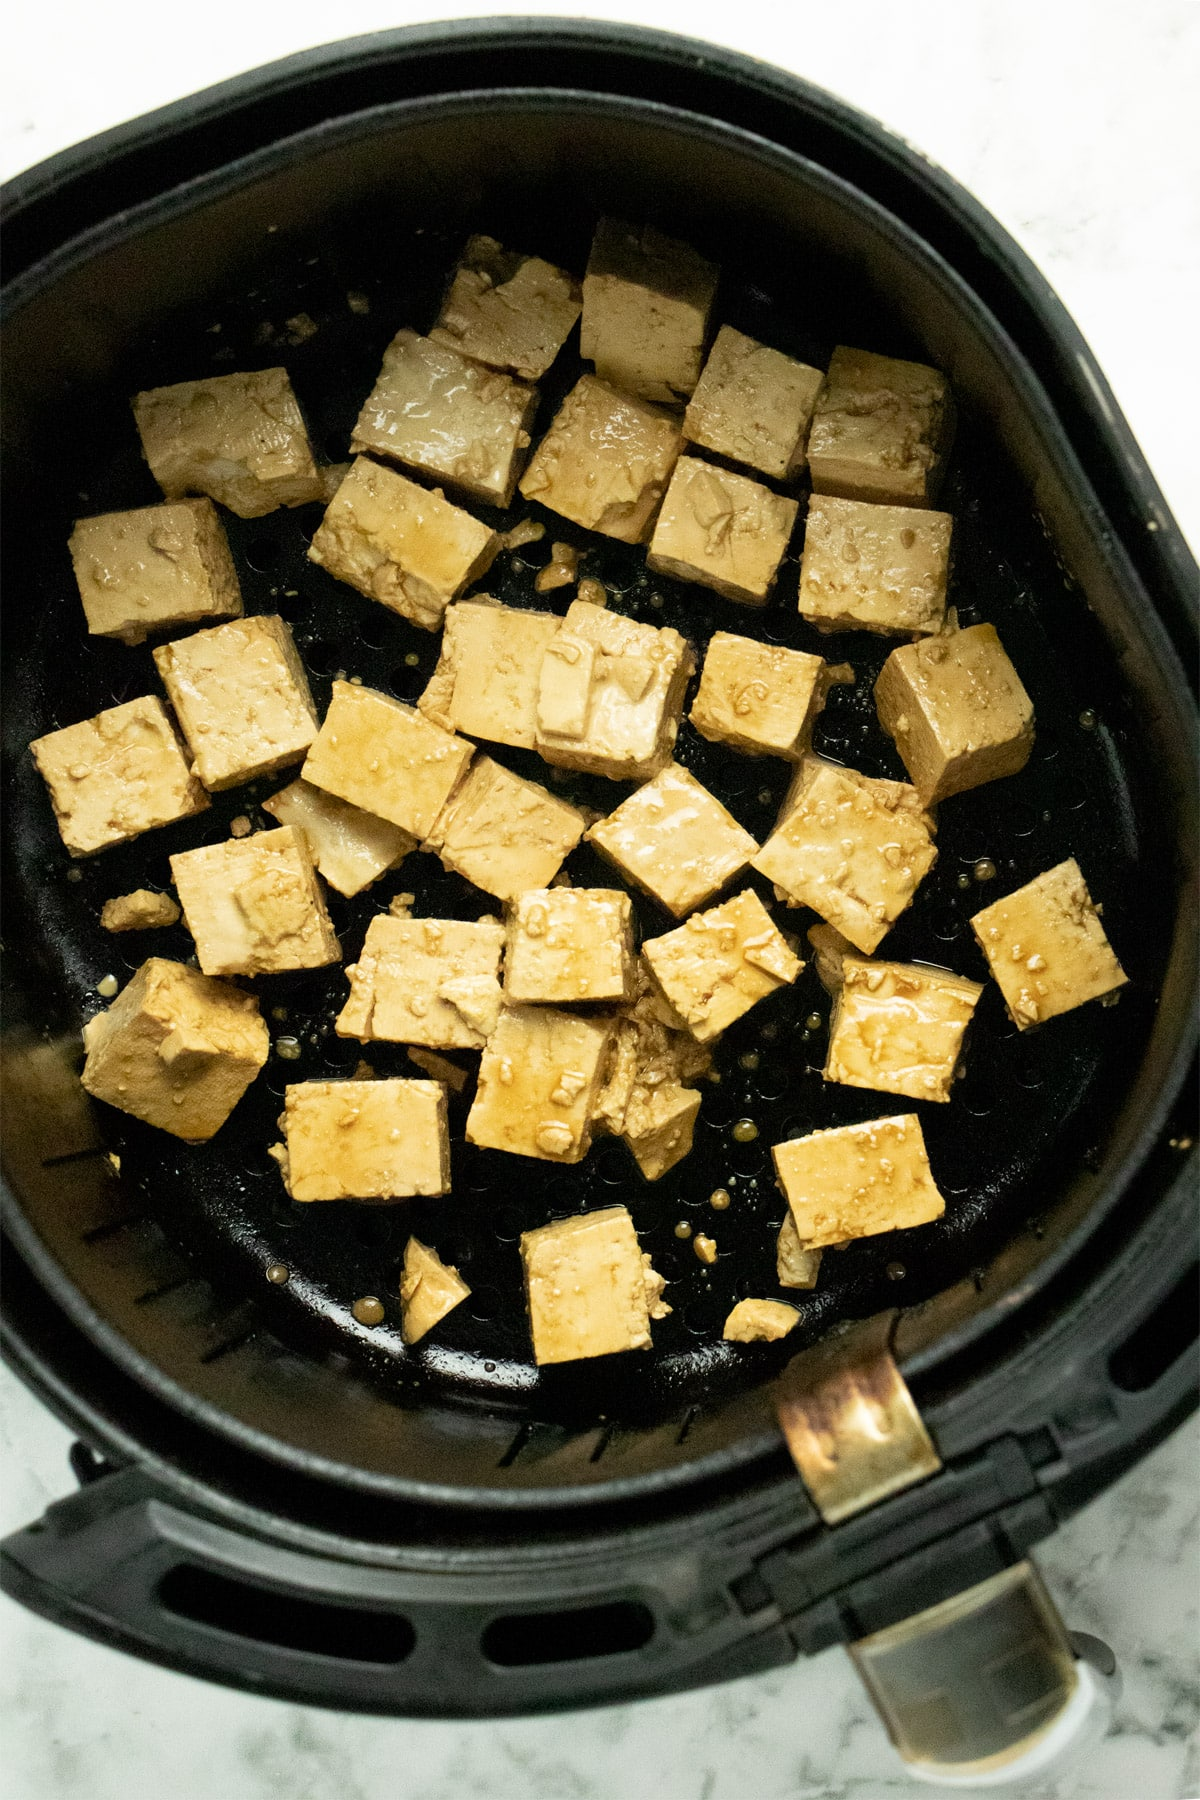 marinated tofu in a black air fryer basket